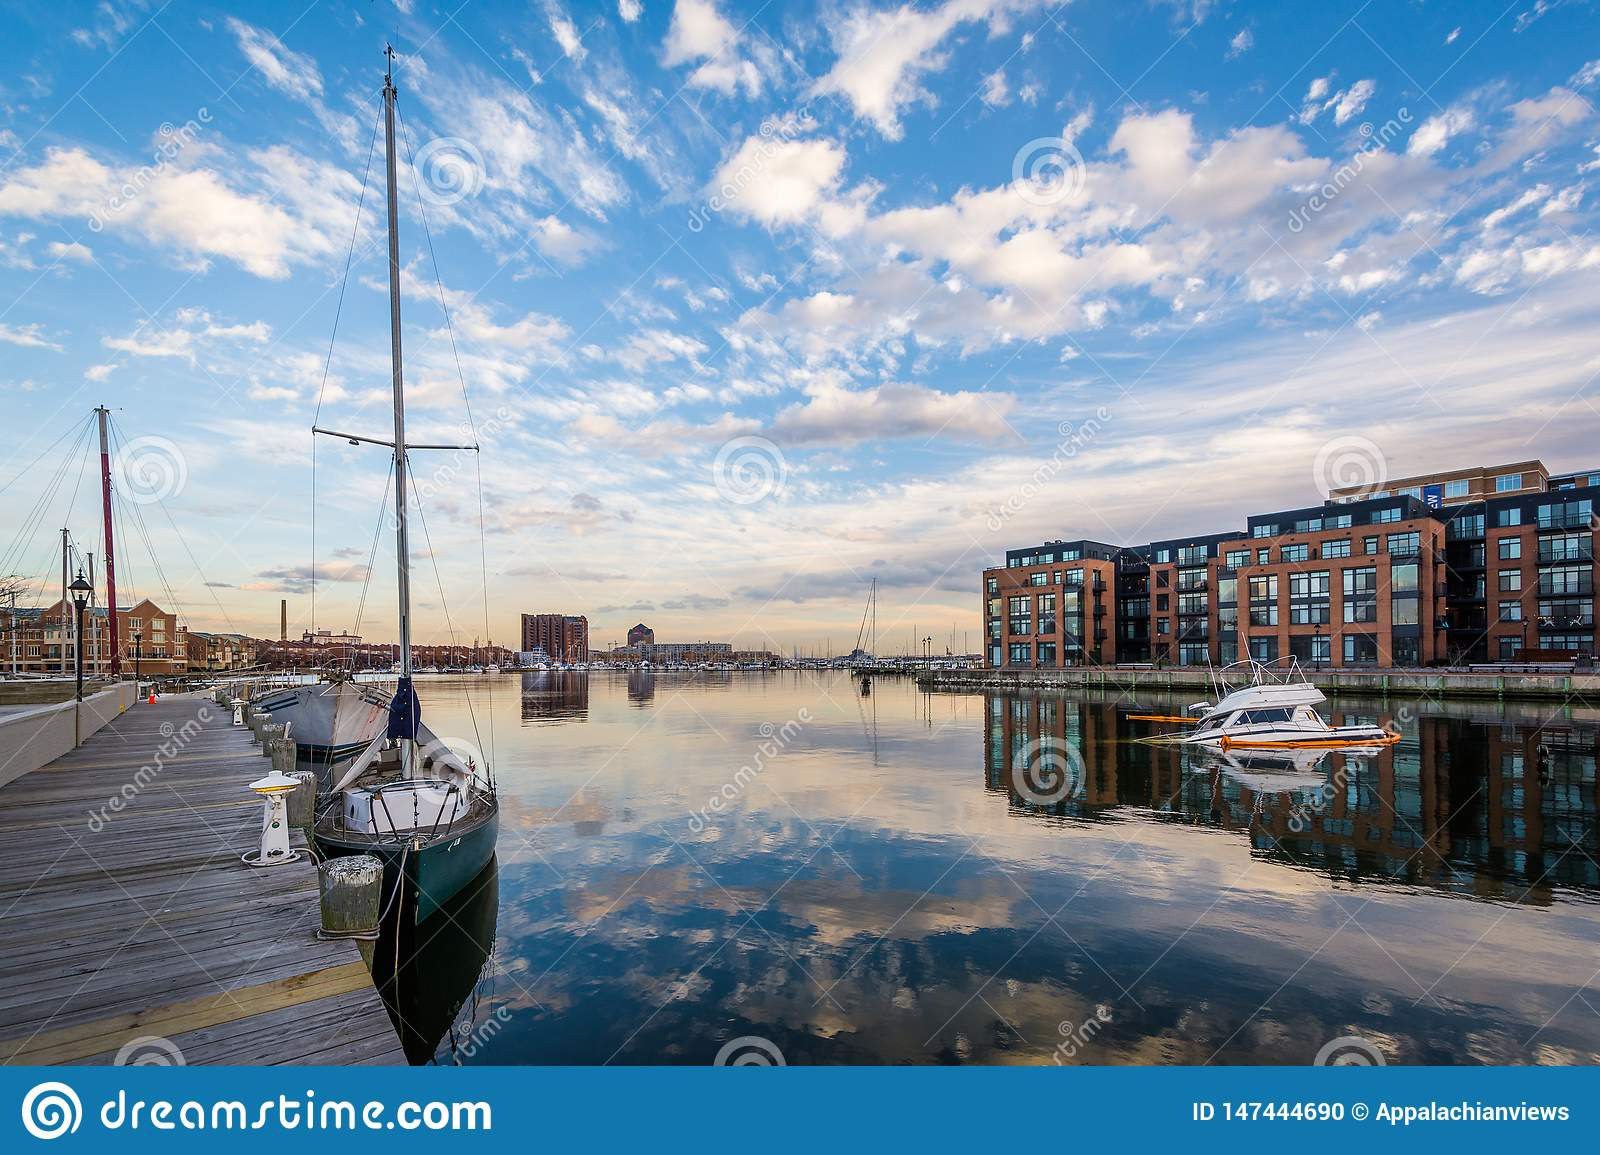 Sunken boat and Union Wharf, in Baltimore, Maryland